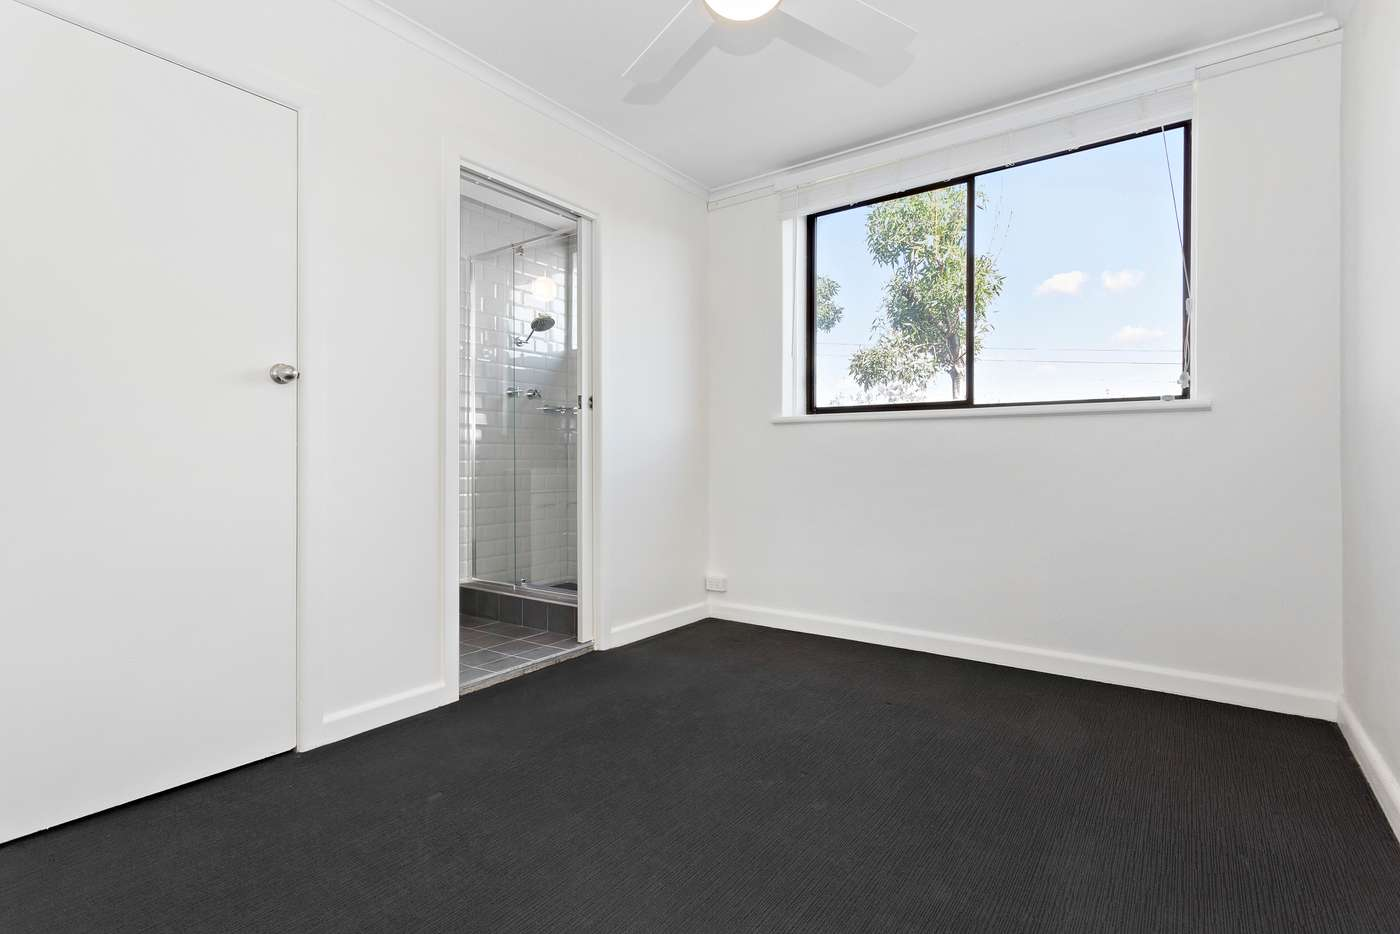 Fifth view of Homely apartment listing, 21/65 Richmond Terrace, Richmond VIC 3121